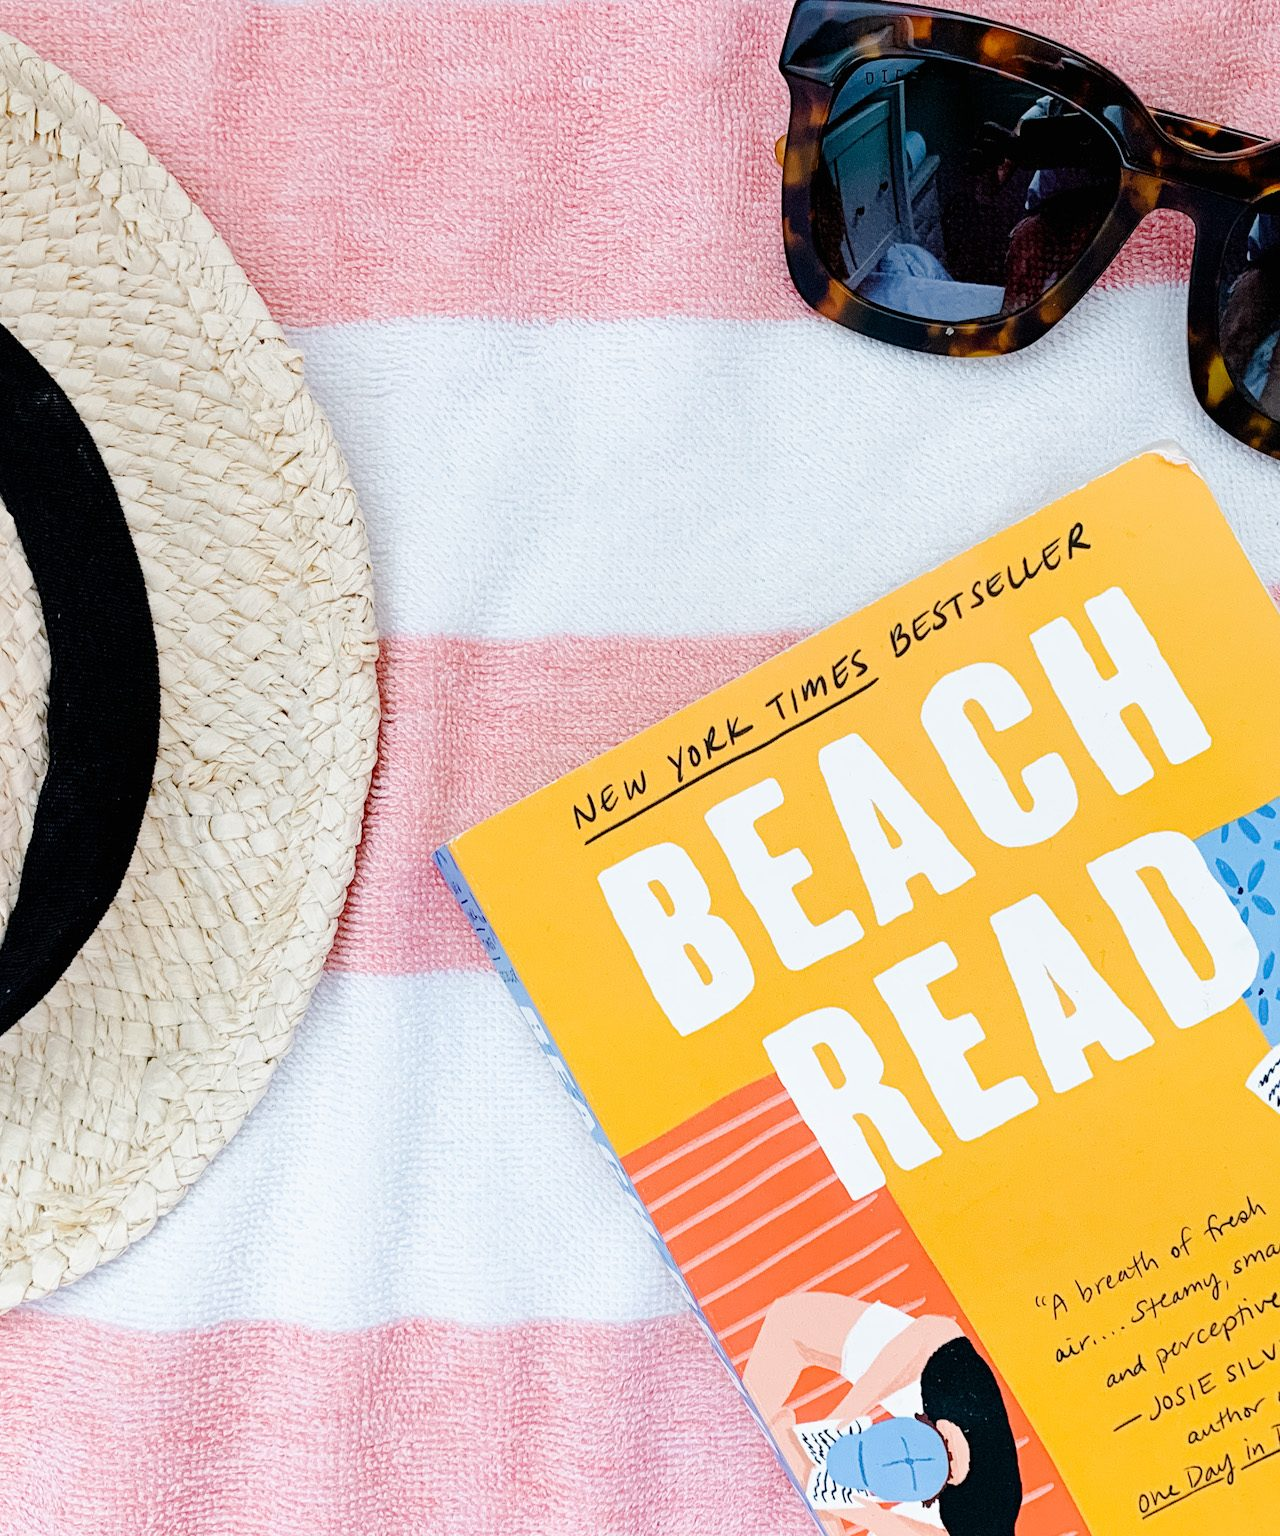 SUMMER READING LIST 2020 | I am sharing my summer reading list 2020, including some fun and fluffy beach reads as well as some murder mysteries. Enjoy!